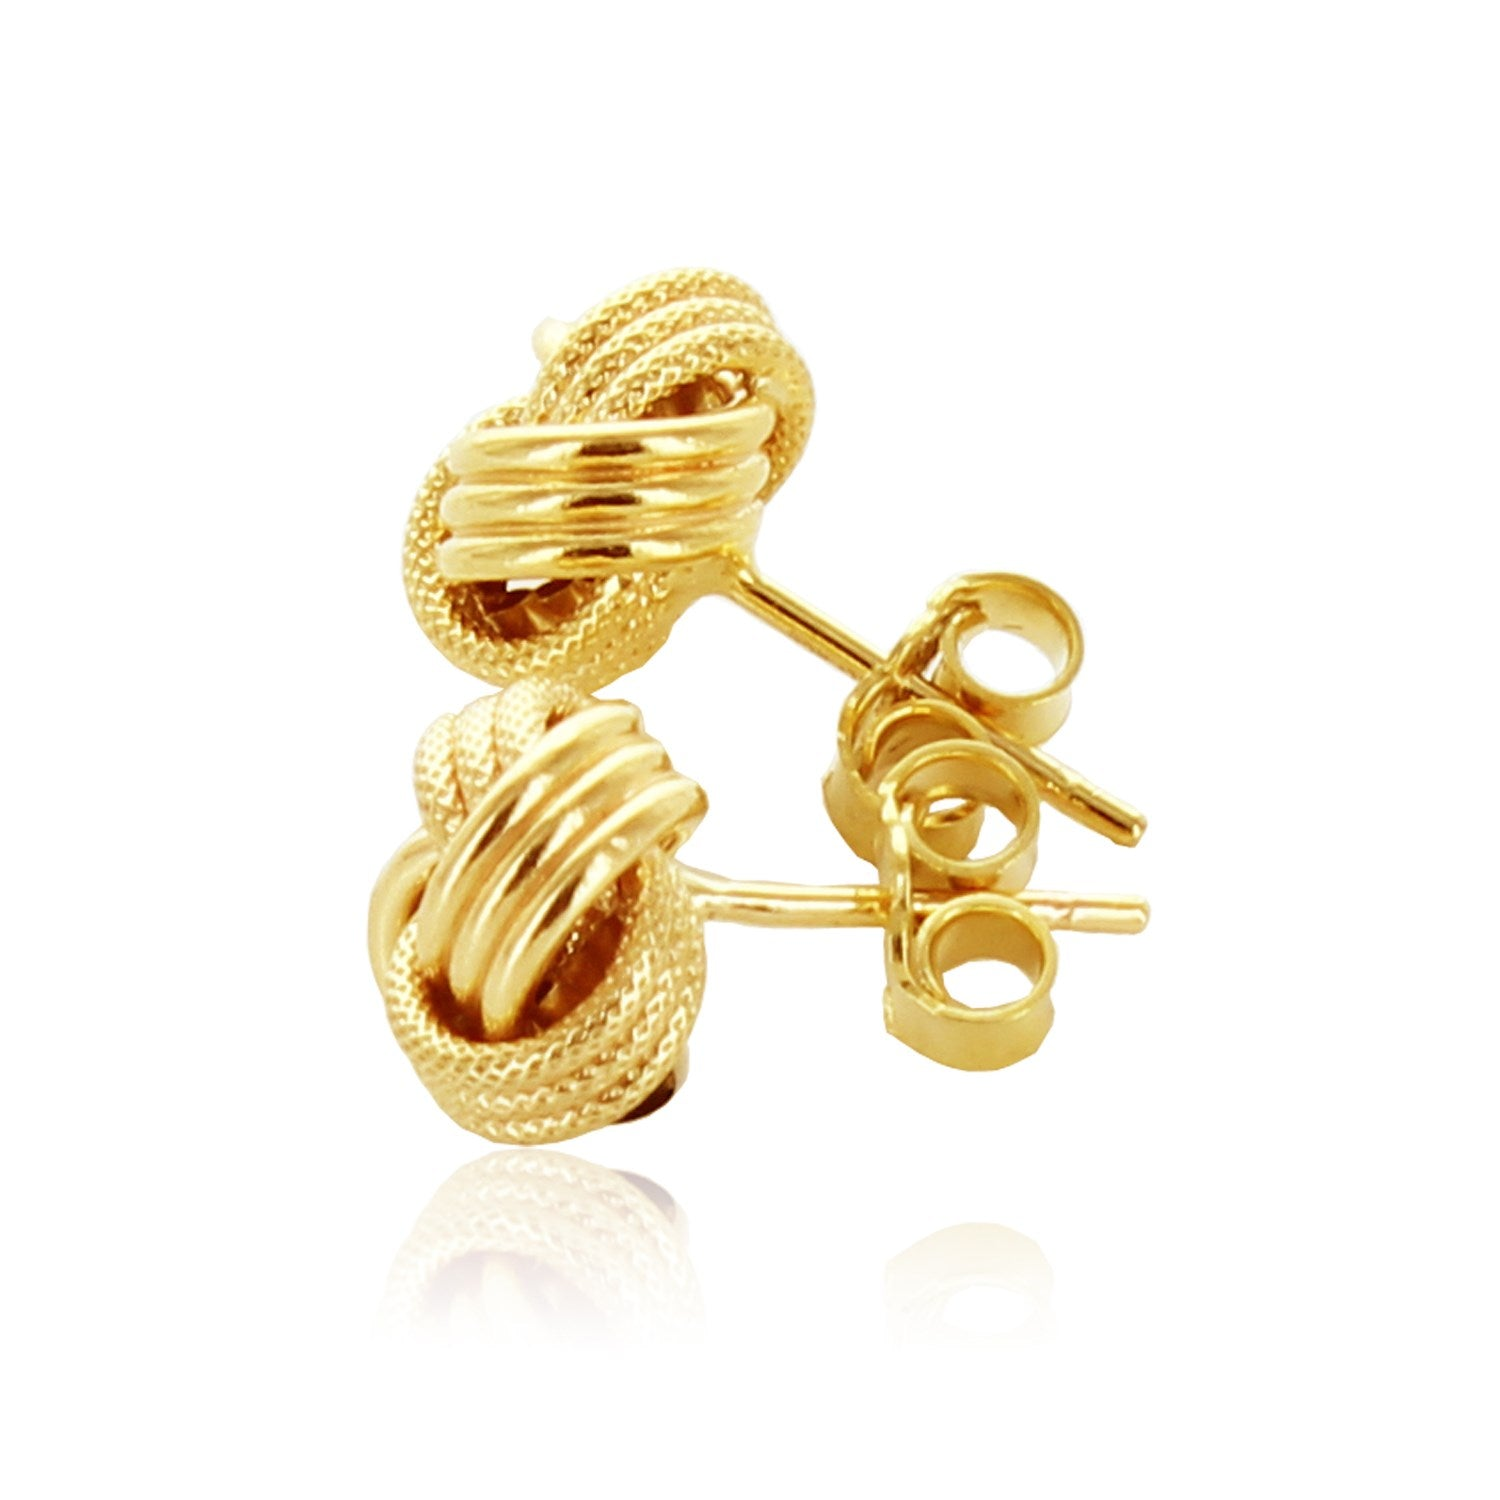 f363d0badd9f 14k Yellow Gold Love Knot with Ridge Texture Earrings